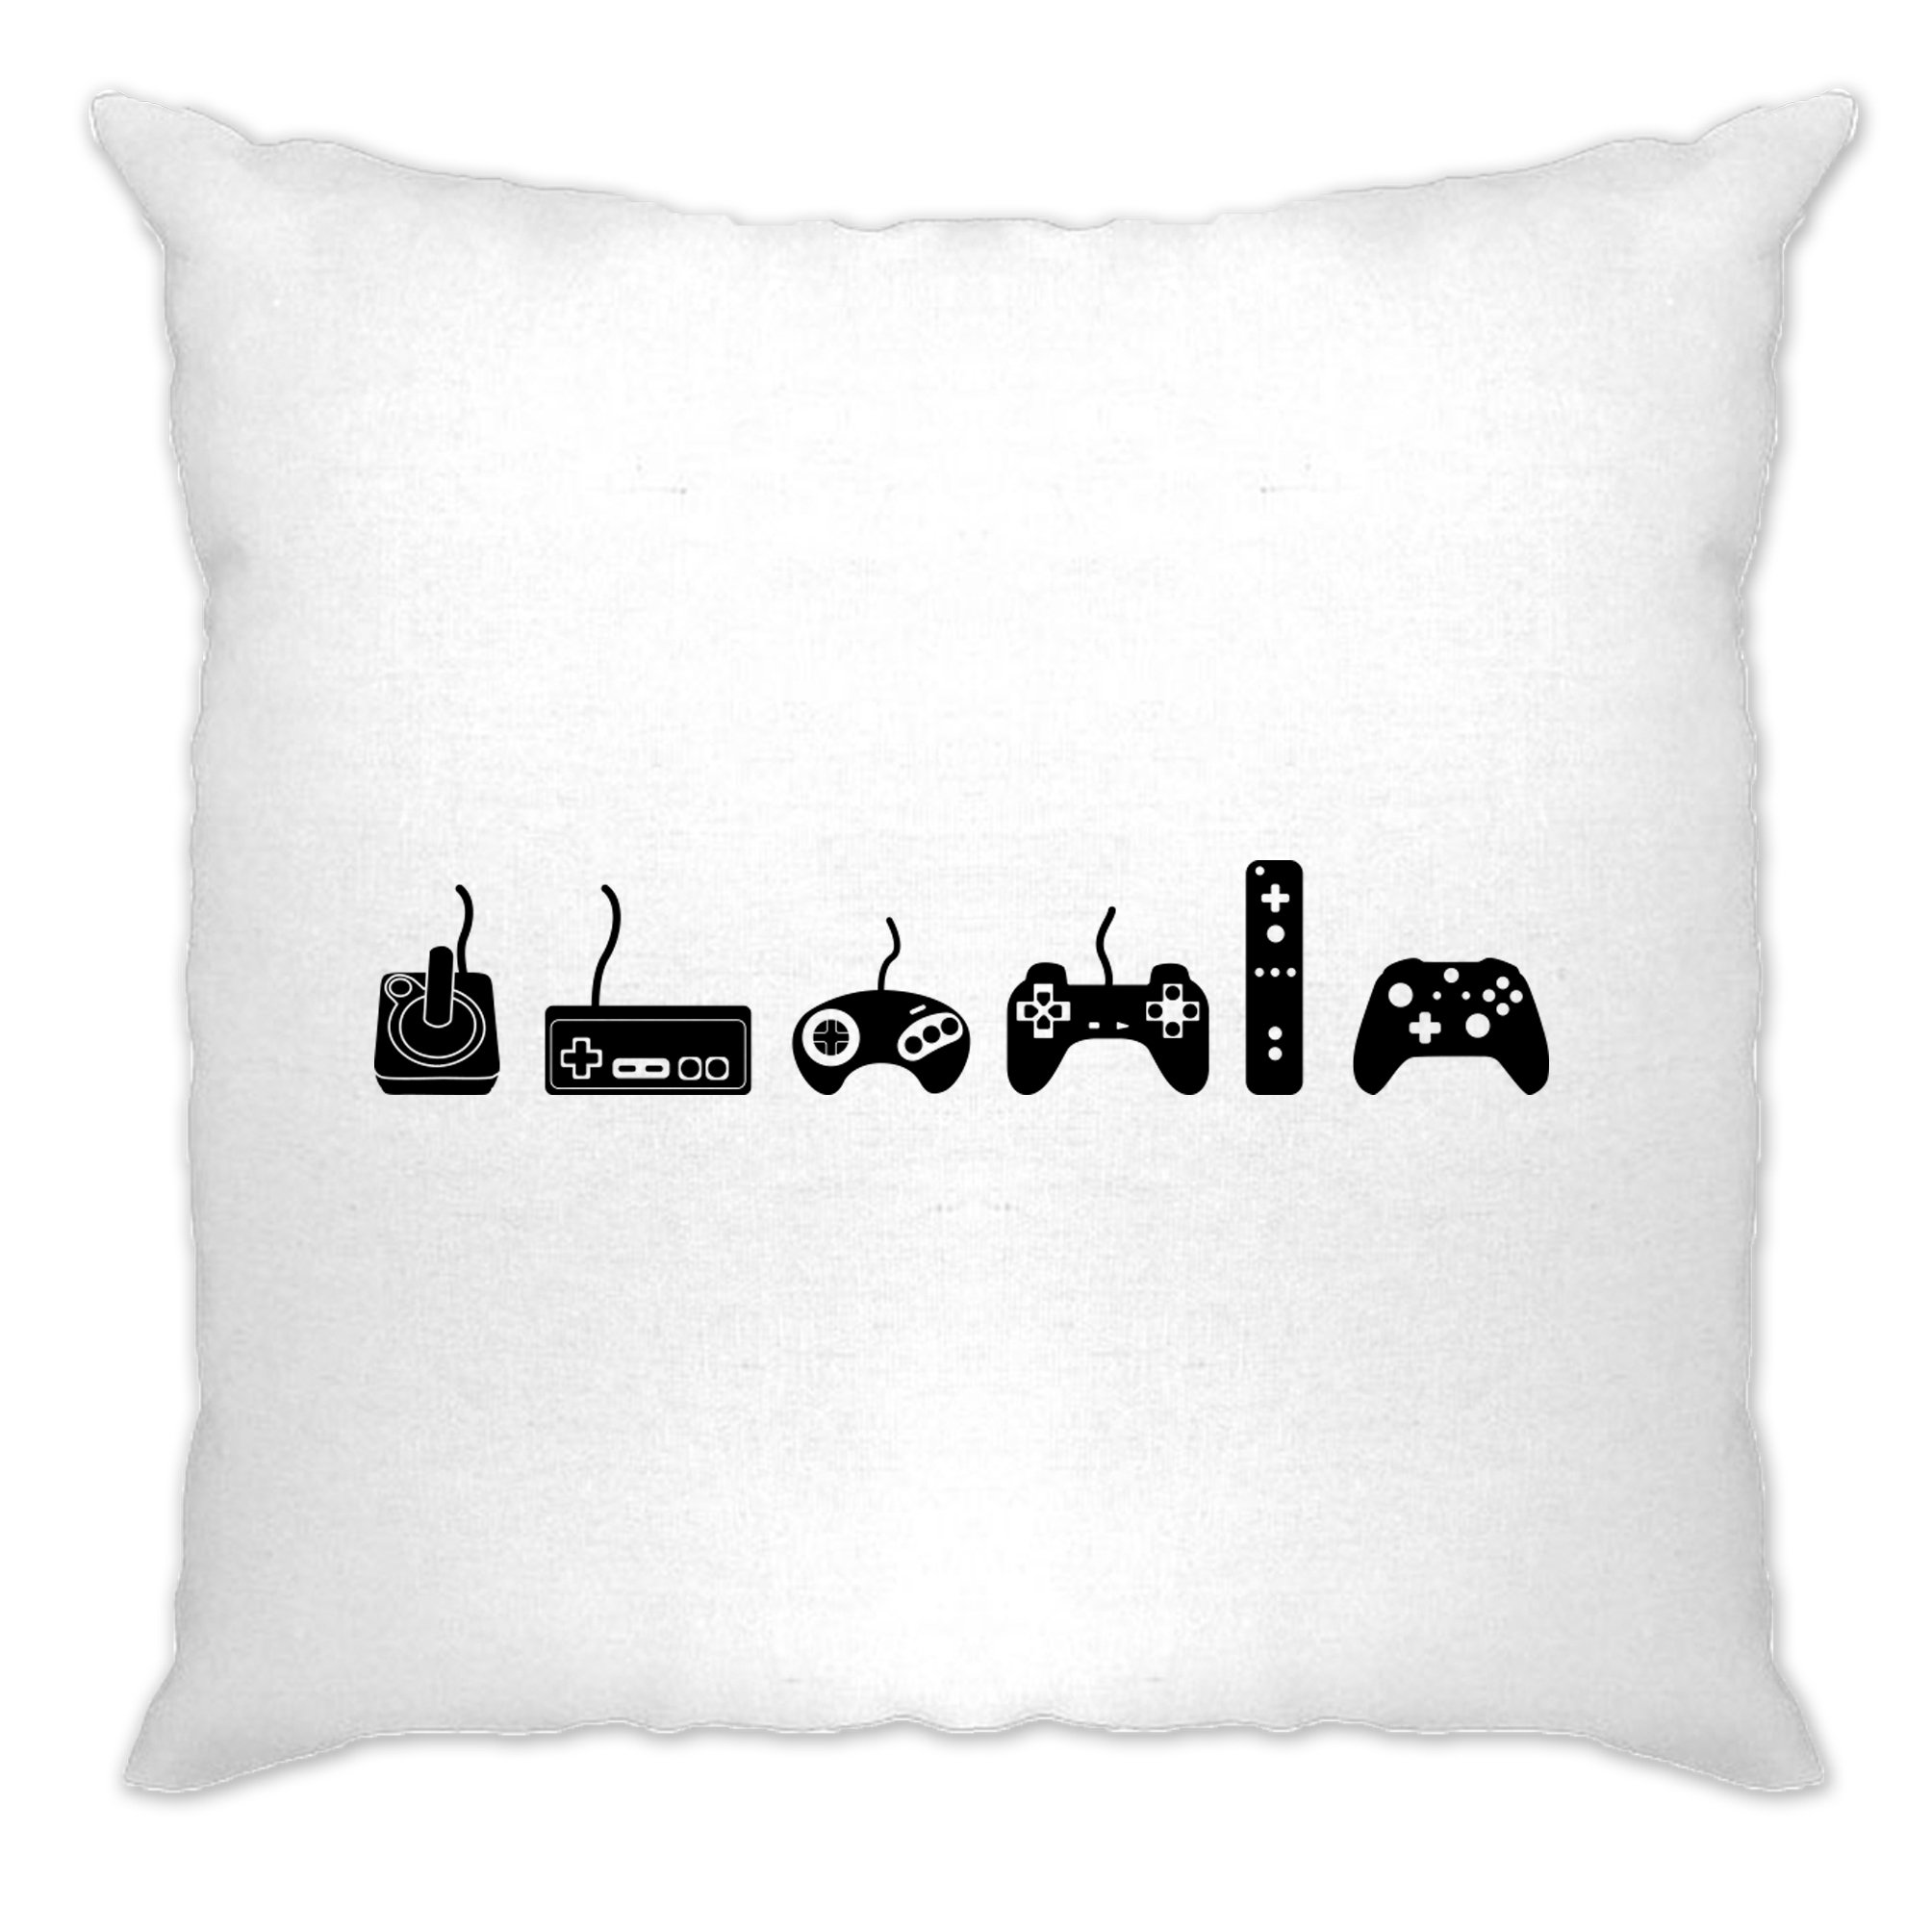 Tim And Ted Gaming Cushion Cover Evolution Of A Video Game Controller White One Size